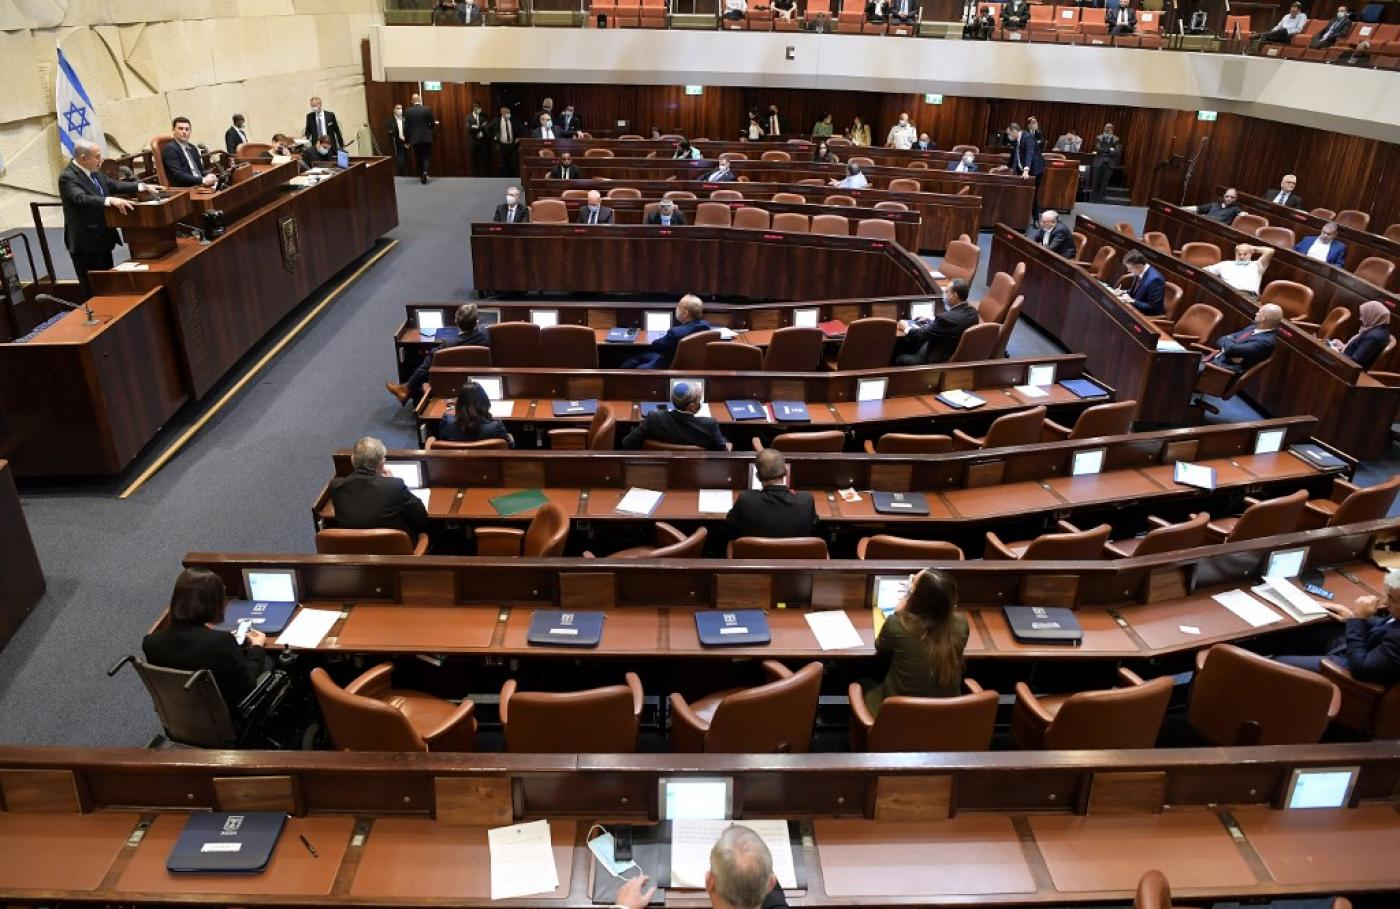 The Knesset will have 24 hours to greenlight or reject Covid-19 regulations before they take effect.